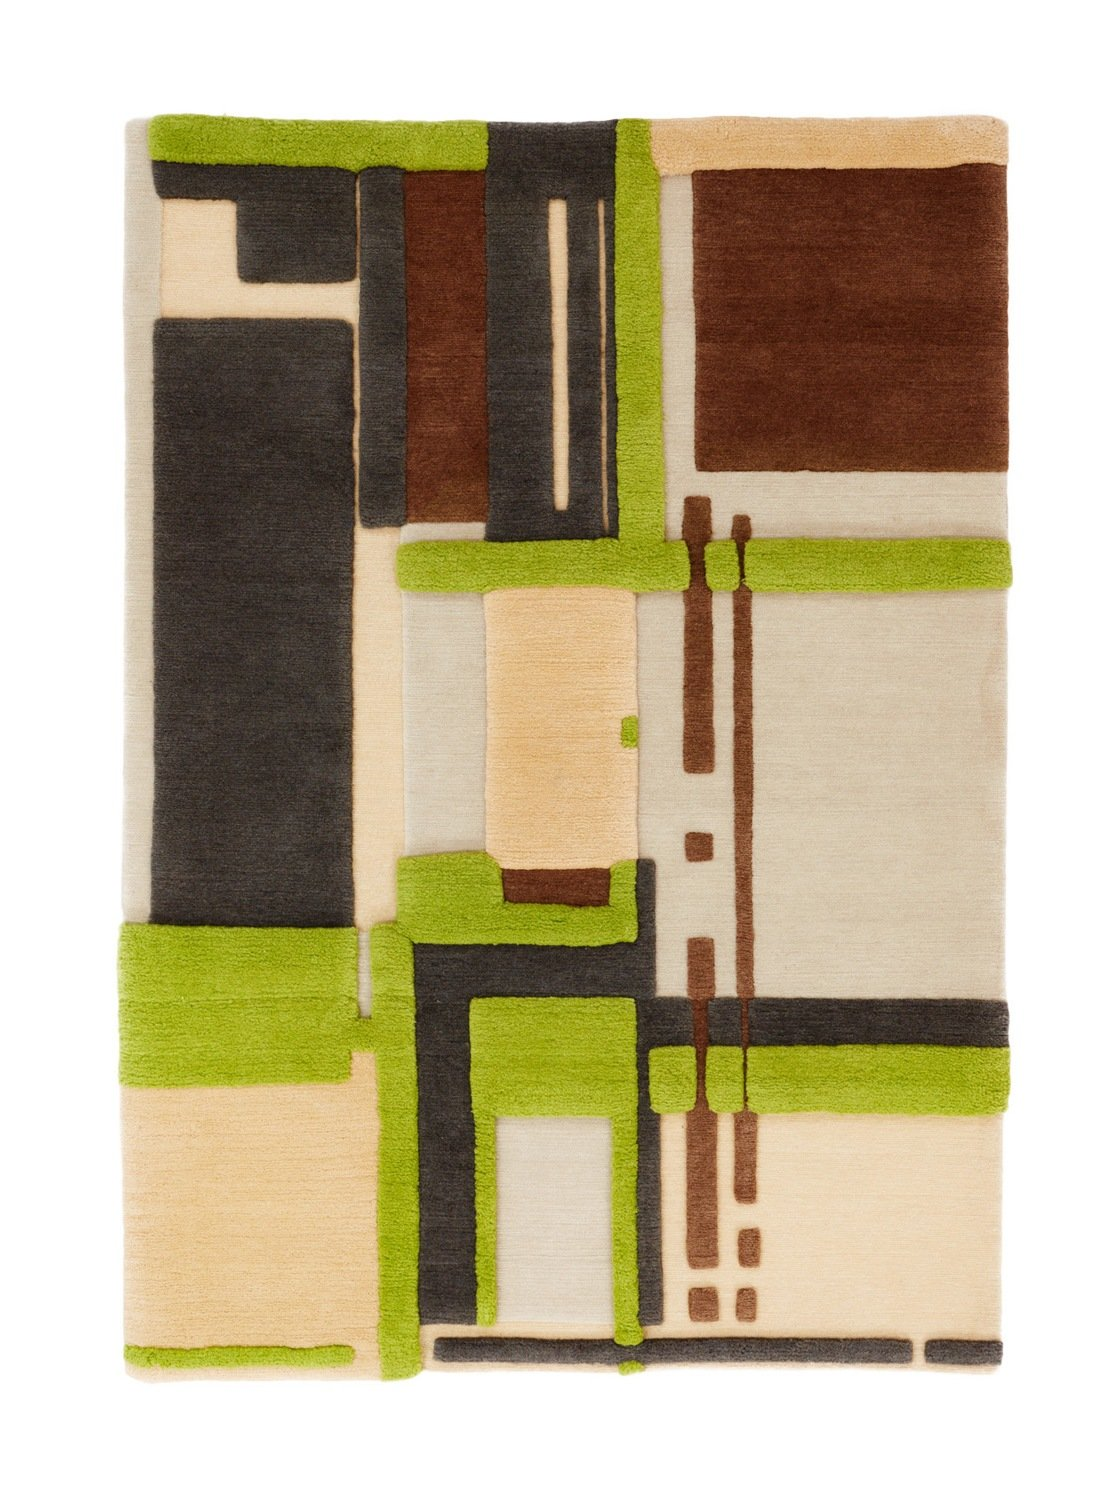 Nepalese rug  Blocks with texture size 180 X 120 Final Reduction